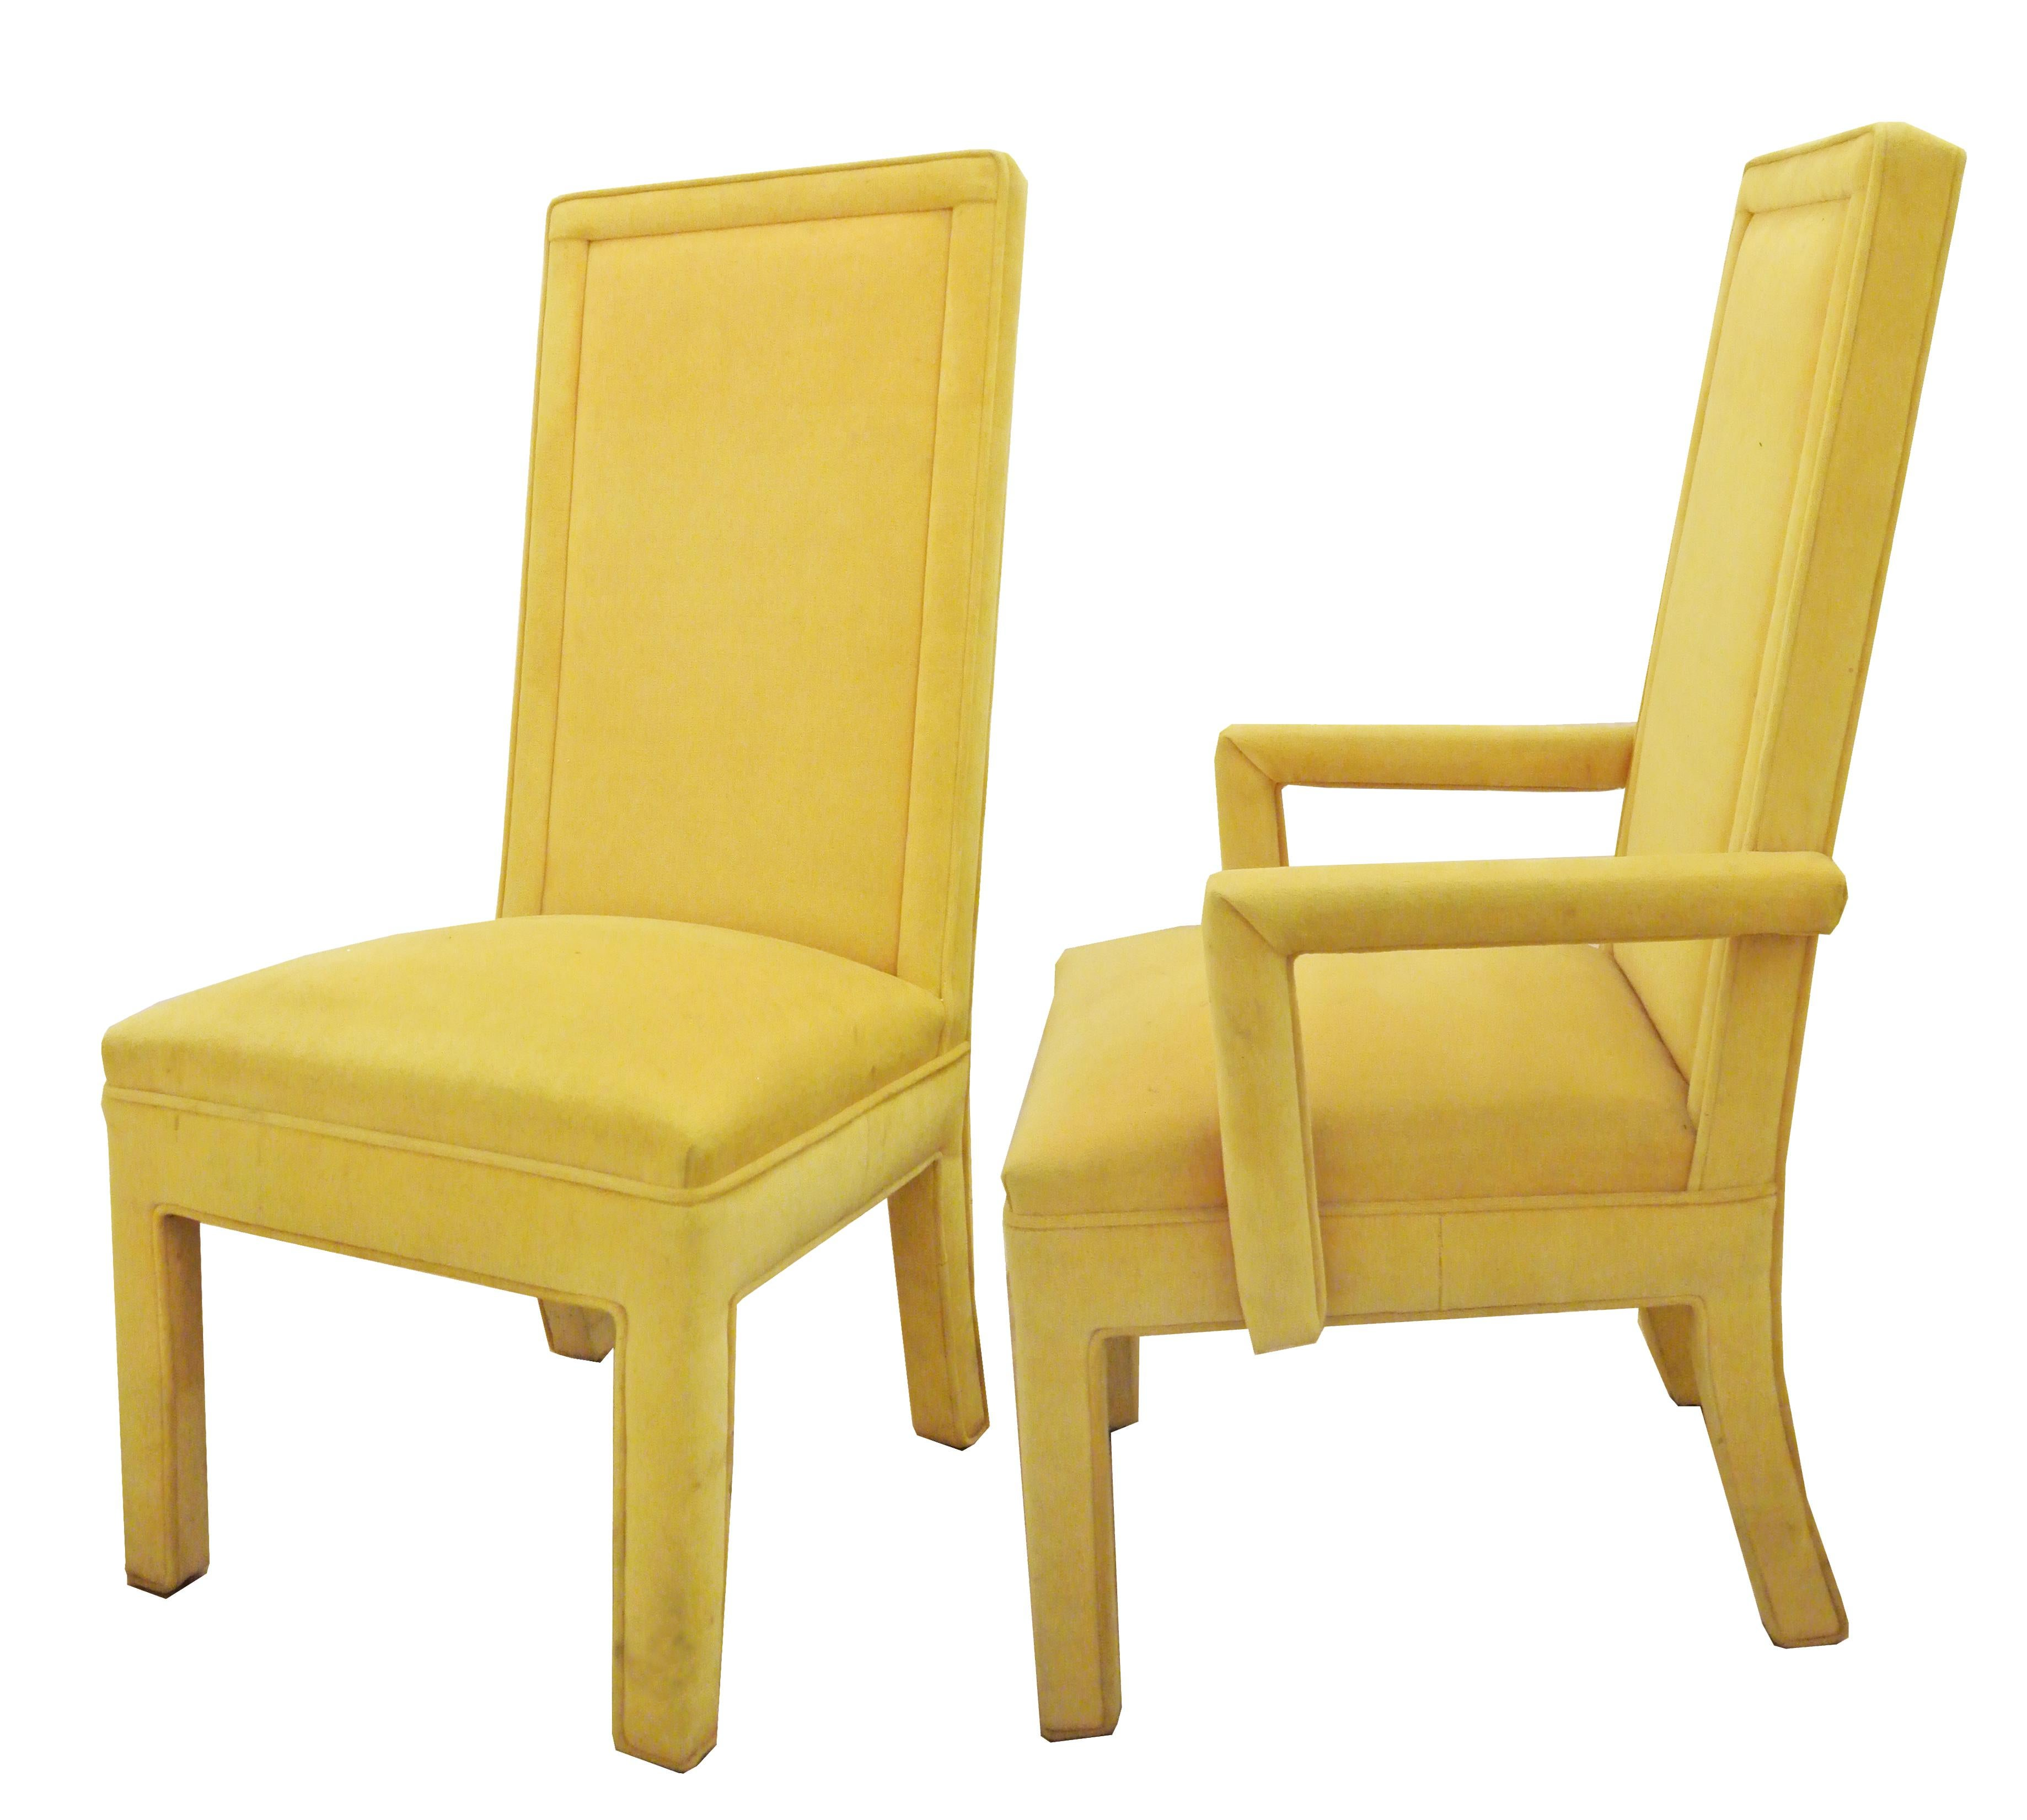 Yellow Faux Mohair Upholstered Parsons Dining Chairs Set  : yellow faux mohair upholstered parsons dining chairs set of 4 0826aspectfitampwidth640ampheight640 from www.chairish.com size 640 x 640 jpeg 27kB